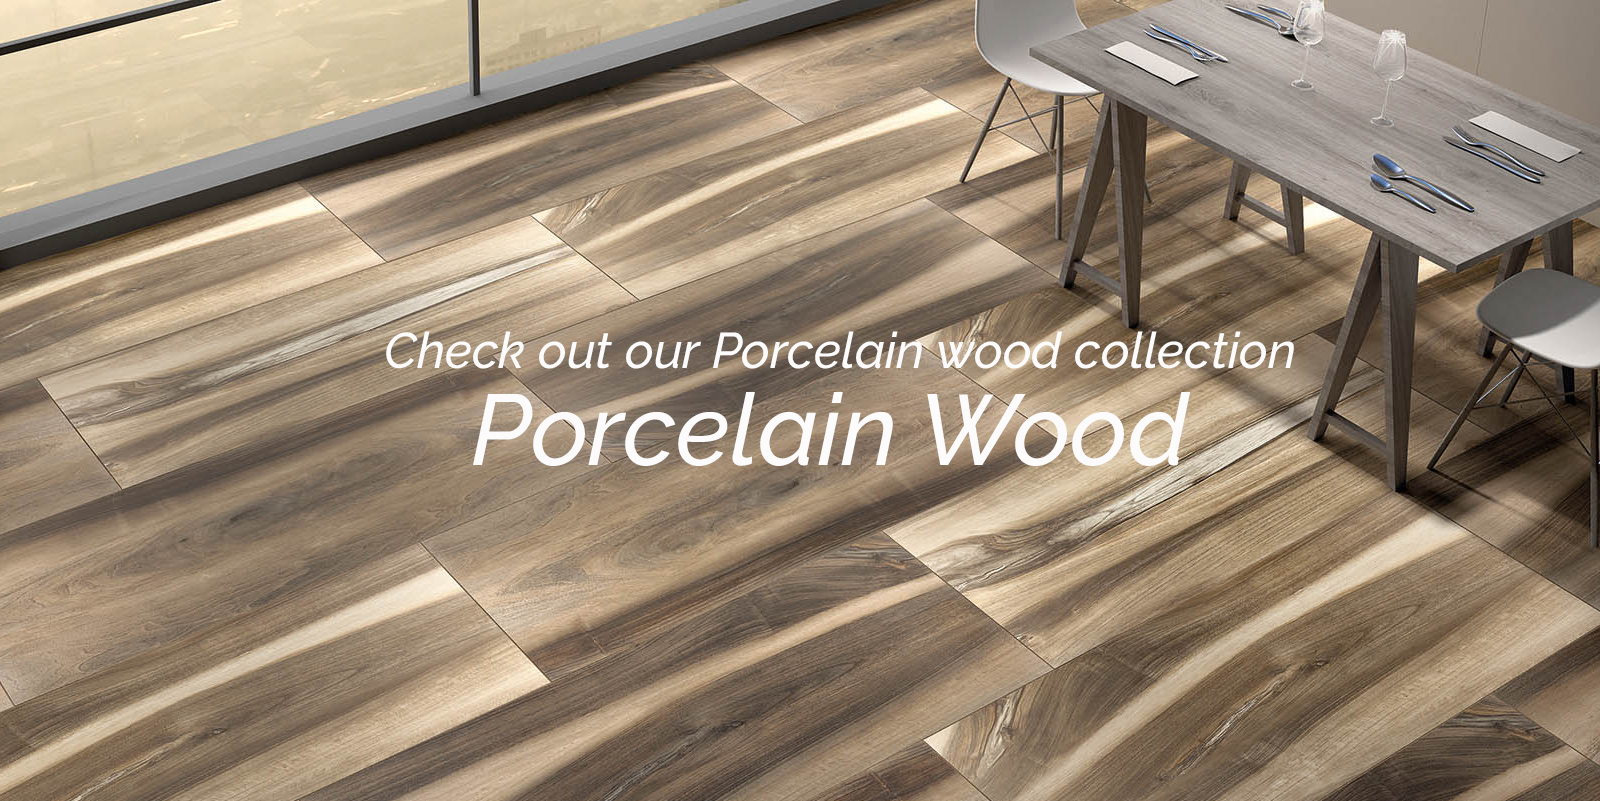 Tilesdirect buy discount tiles online tile store porcelain wood tiles dailygadgetfo Gallery